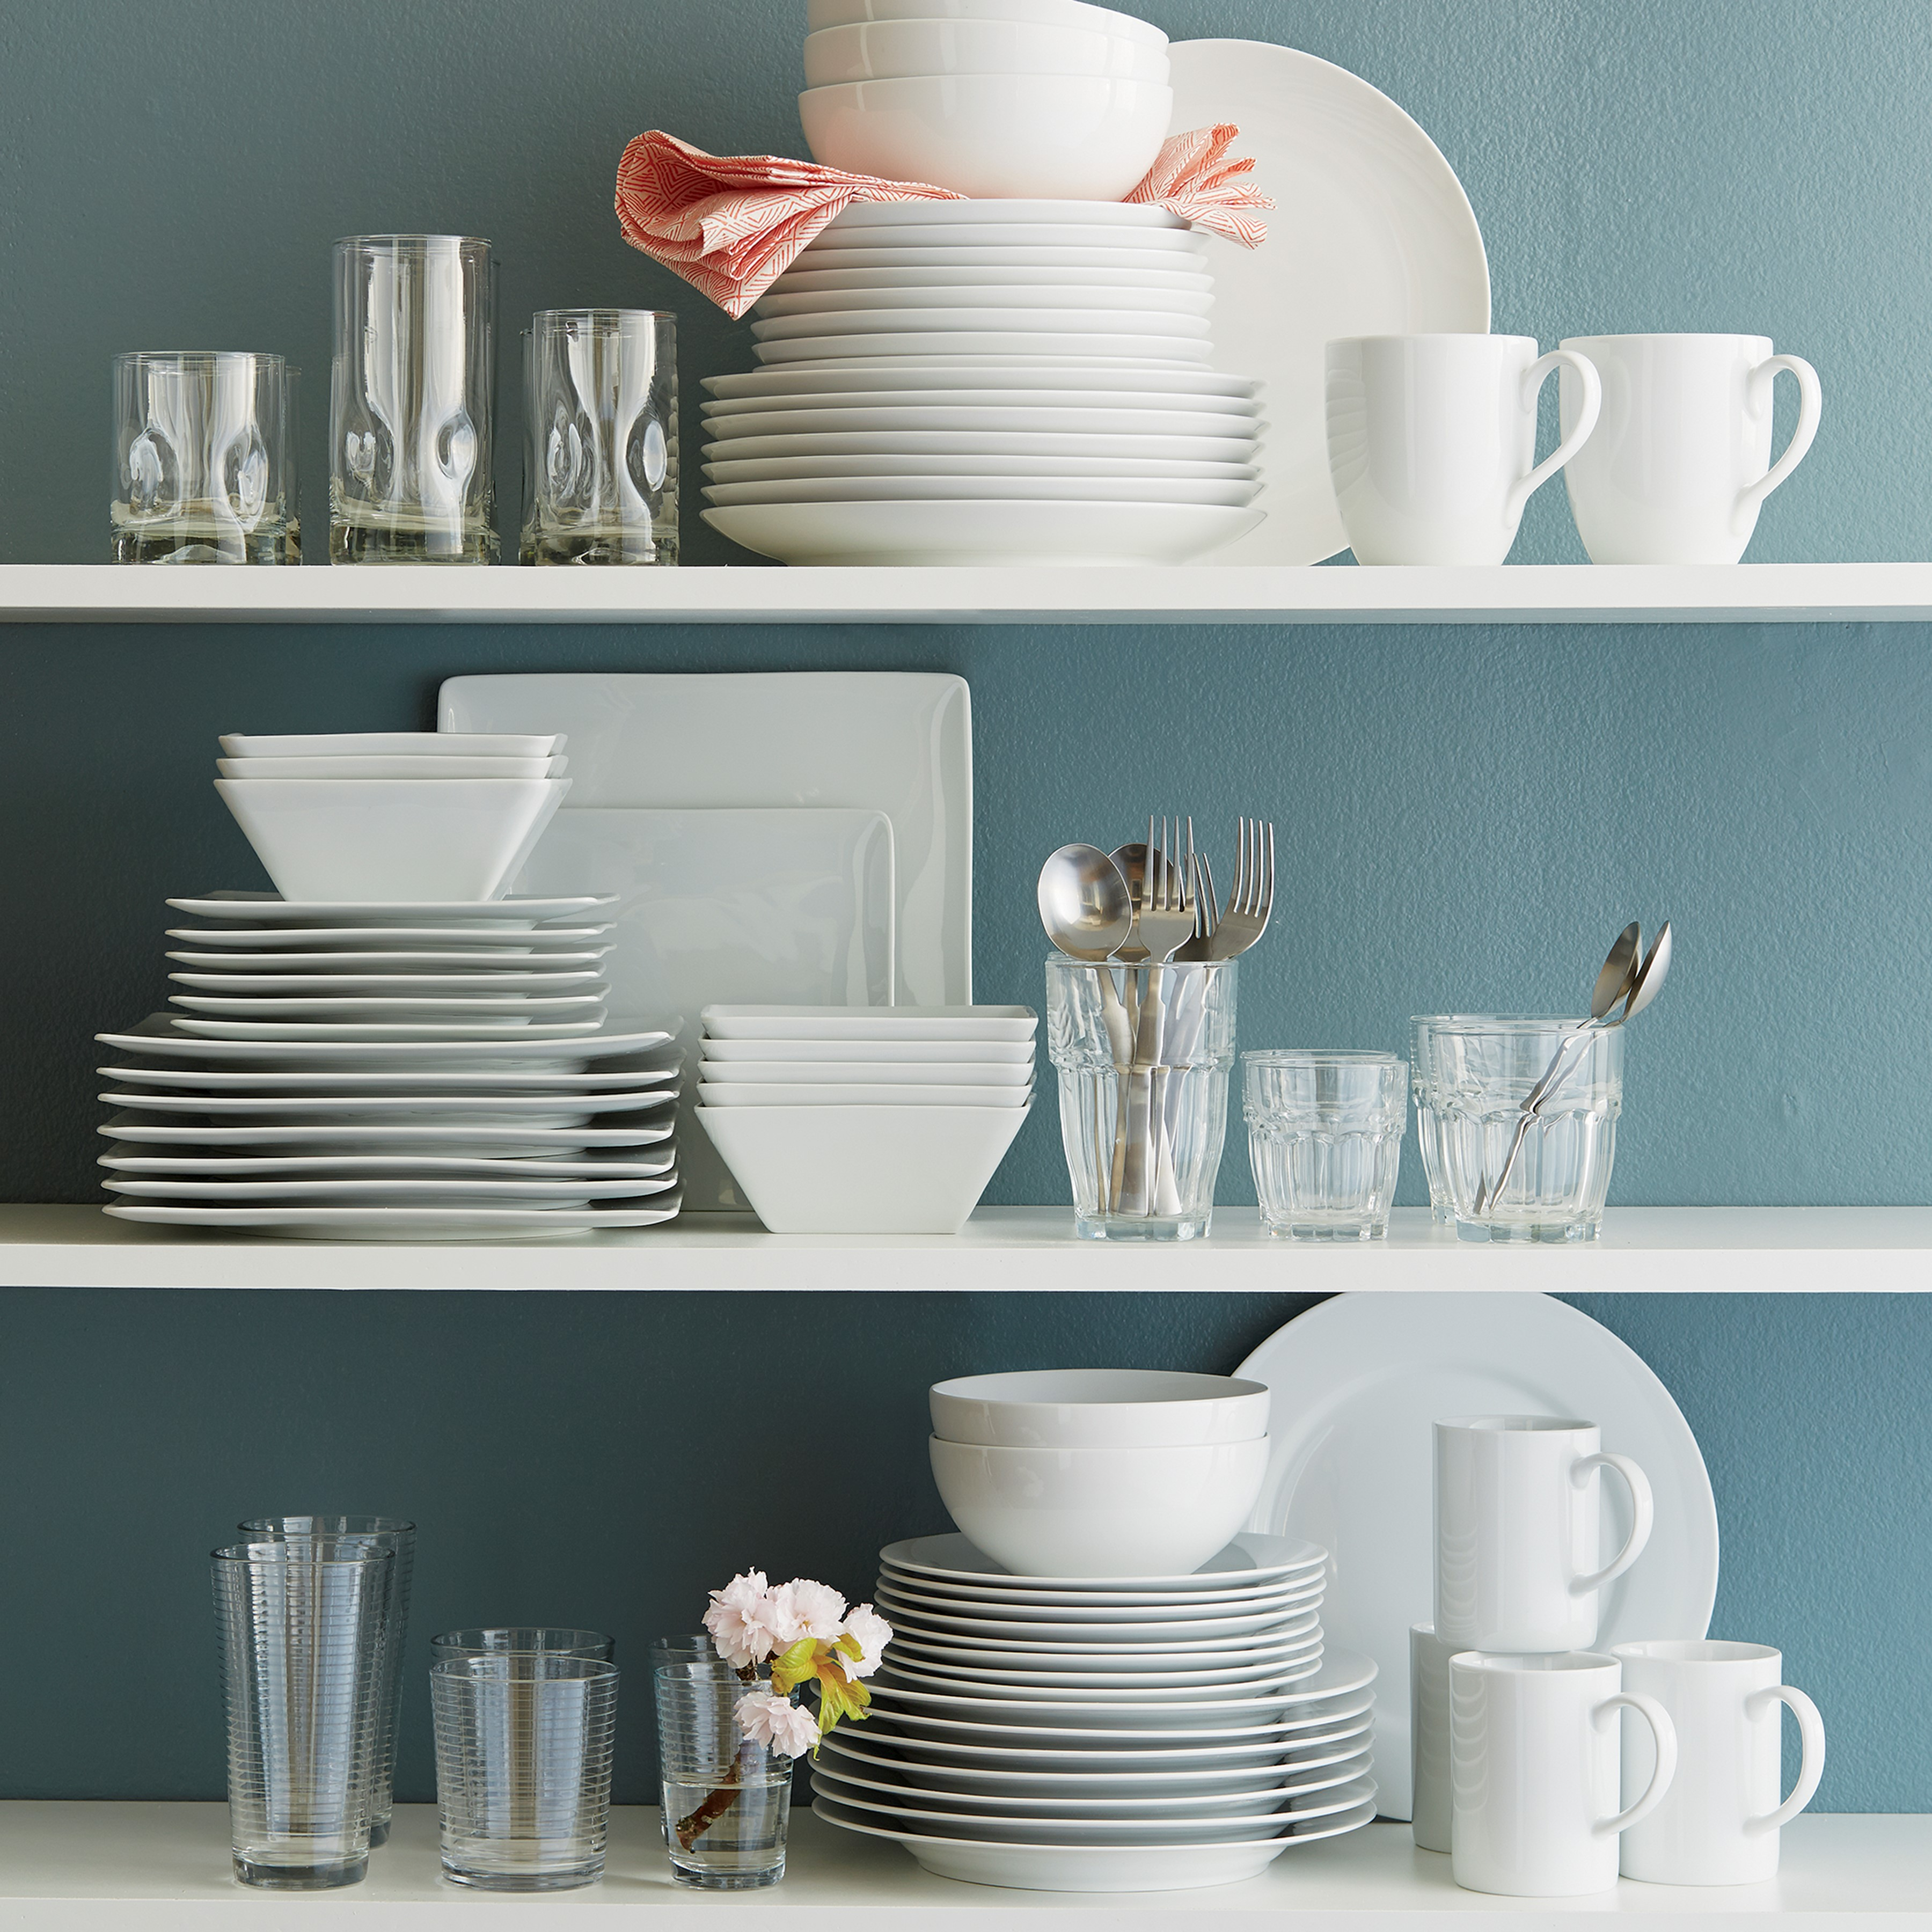 The Registry Items Every Apartment Dweller Needs